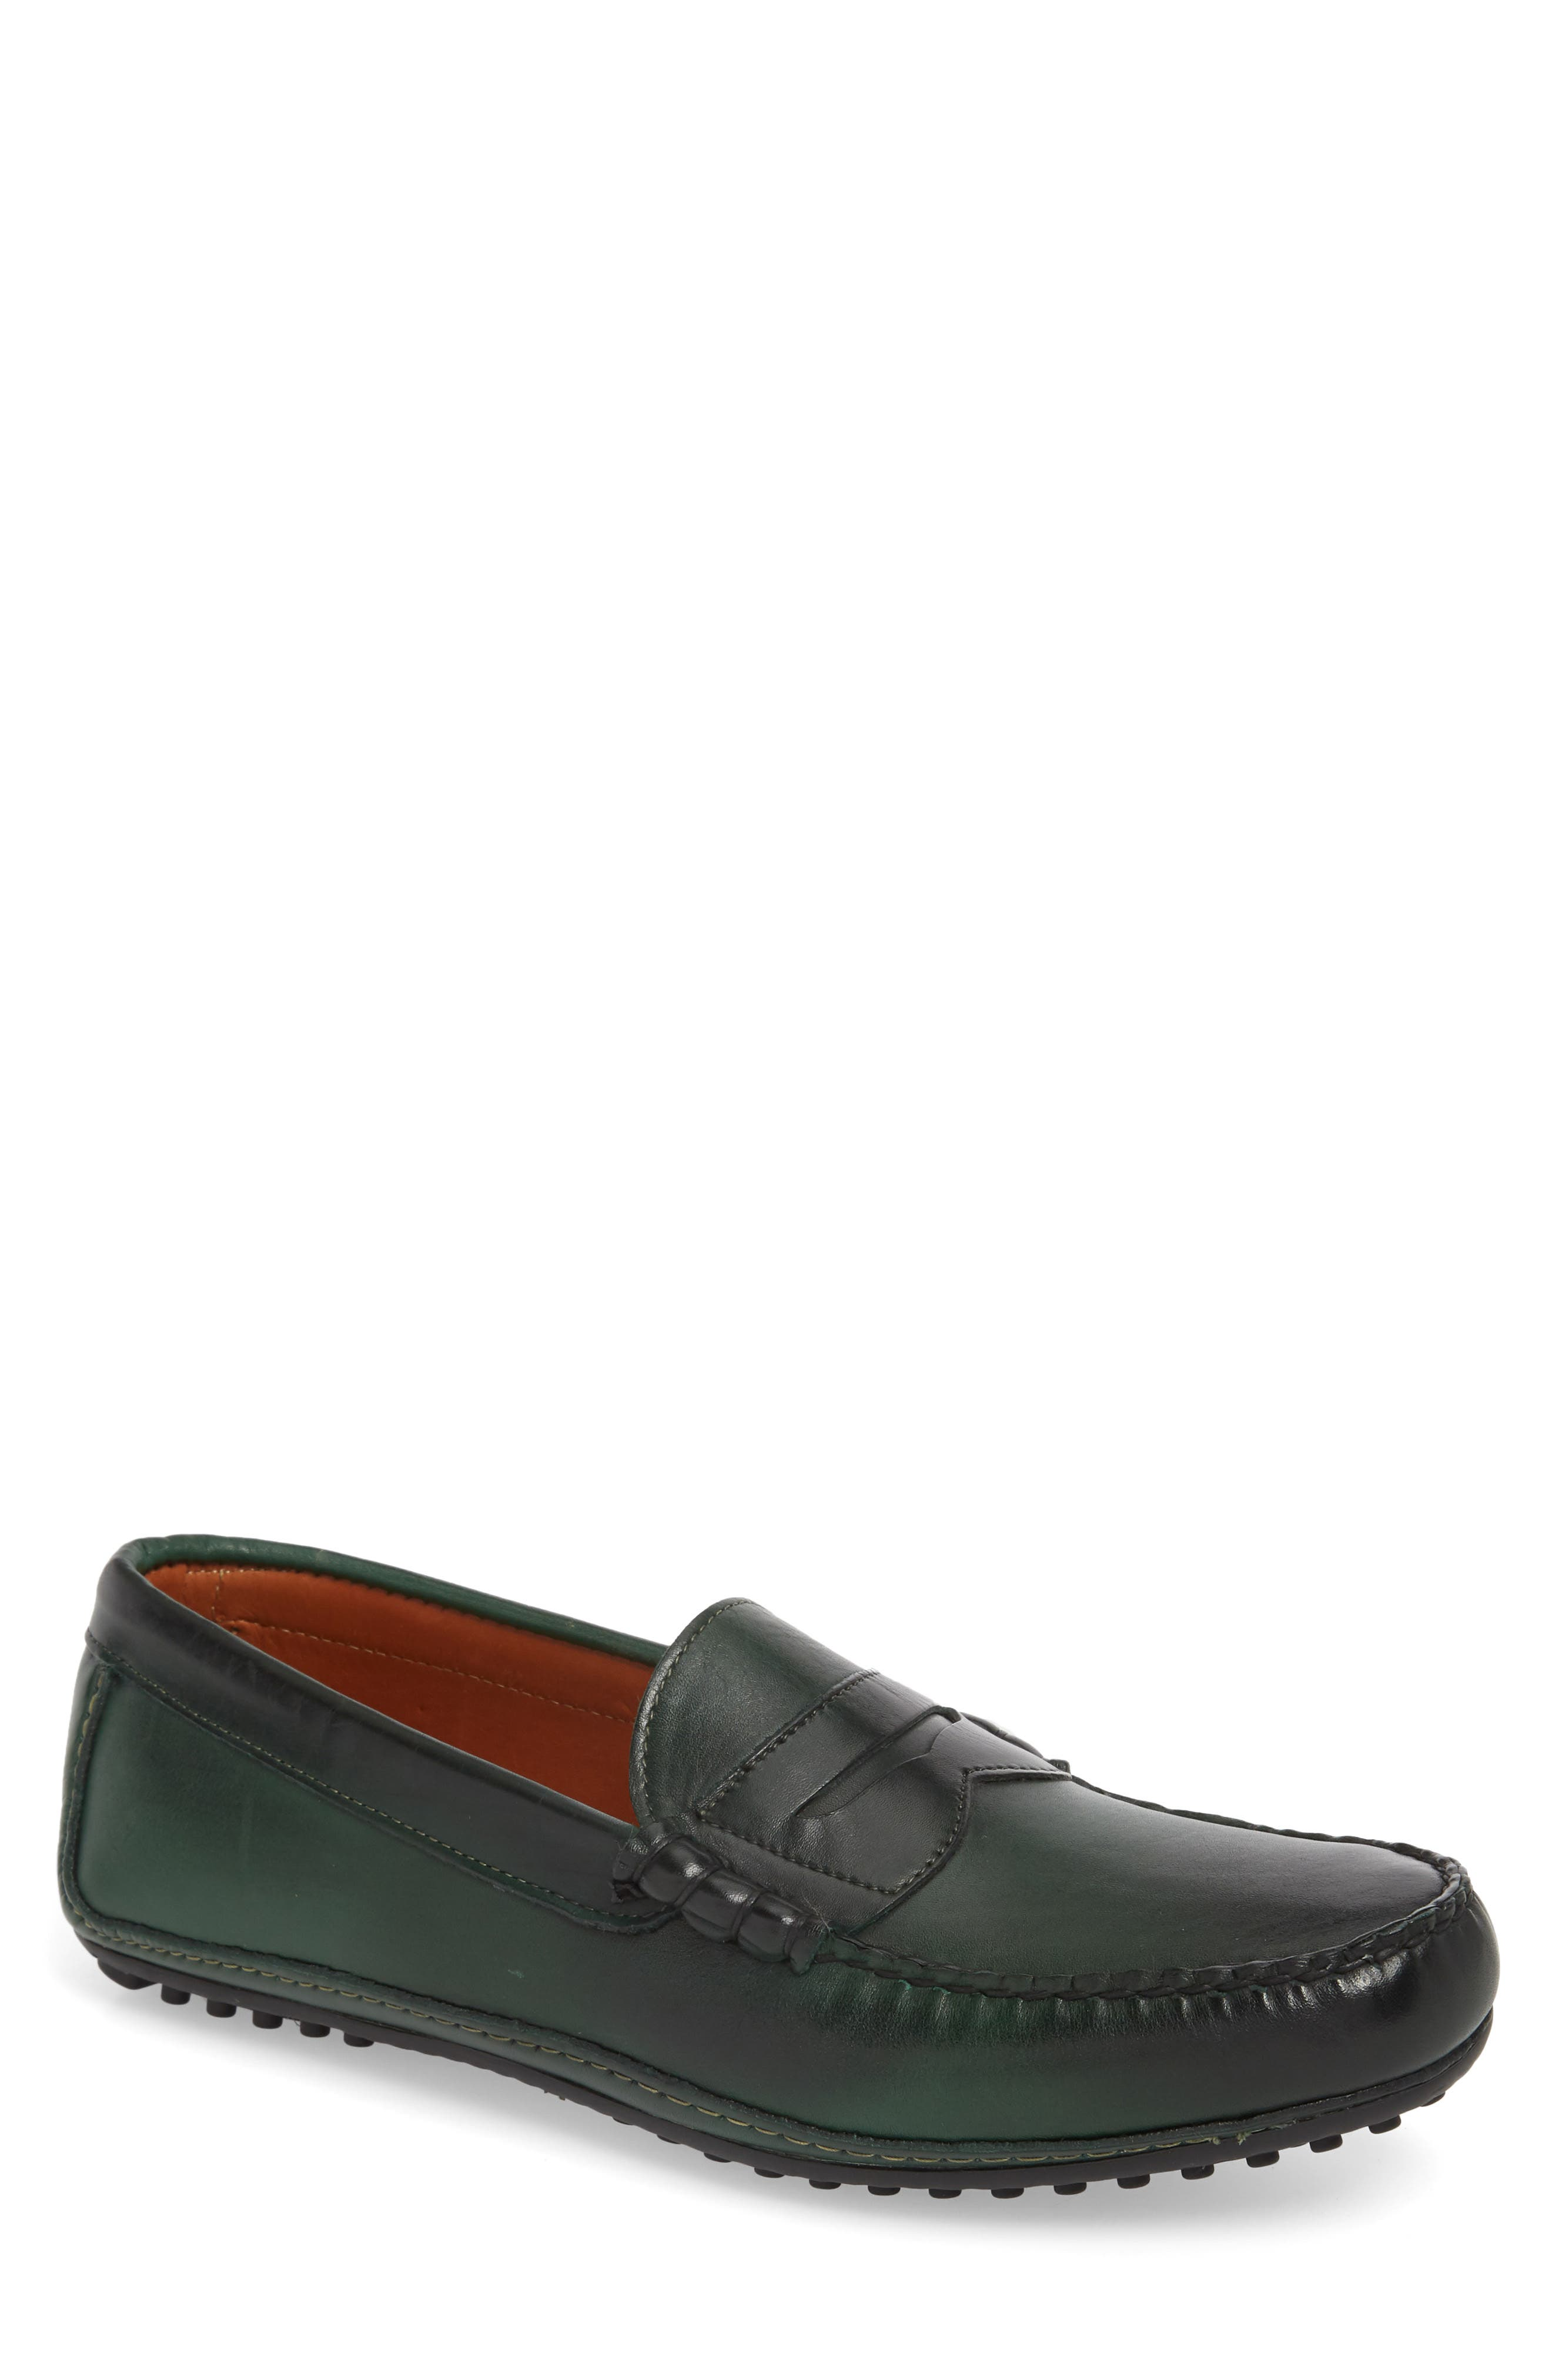 Siesta Key Penny Loafer,                             Main thumbnail 1, color,                             GREEN LEATHER